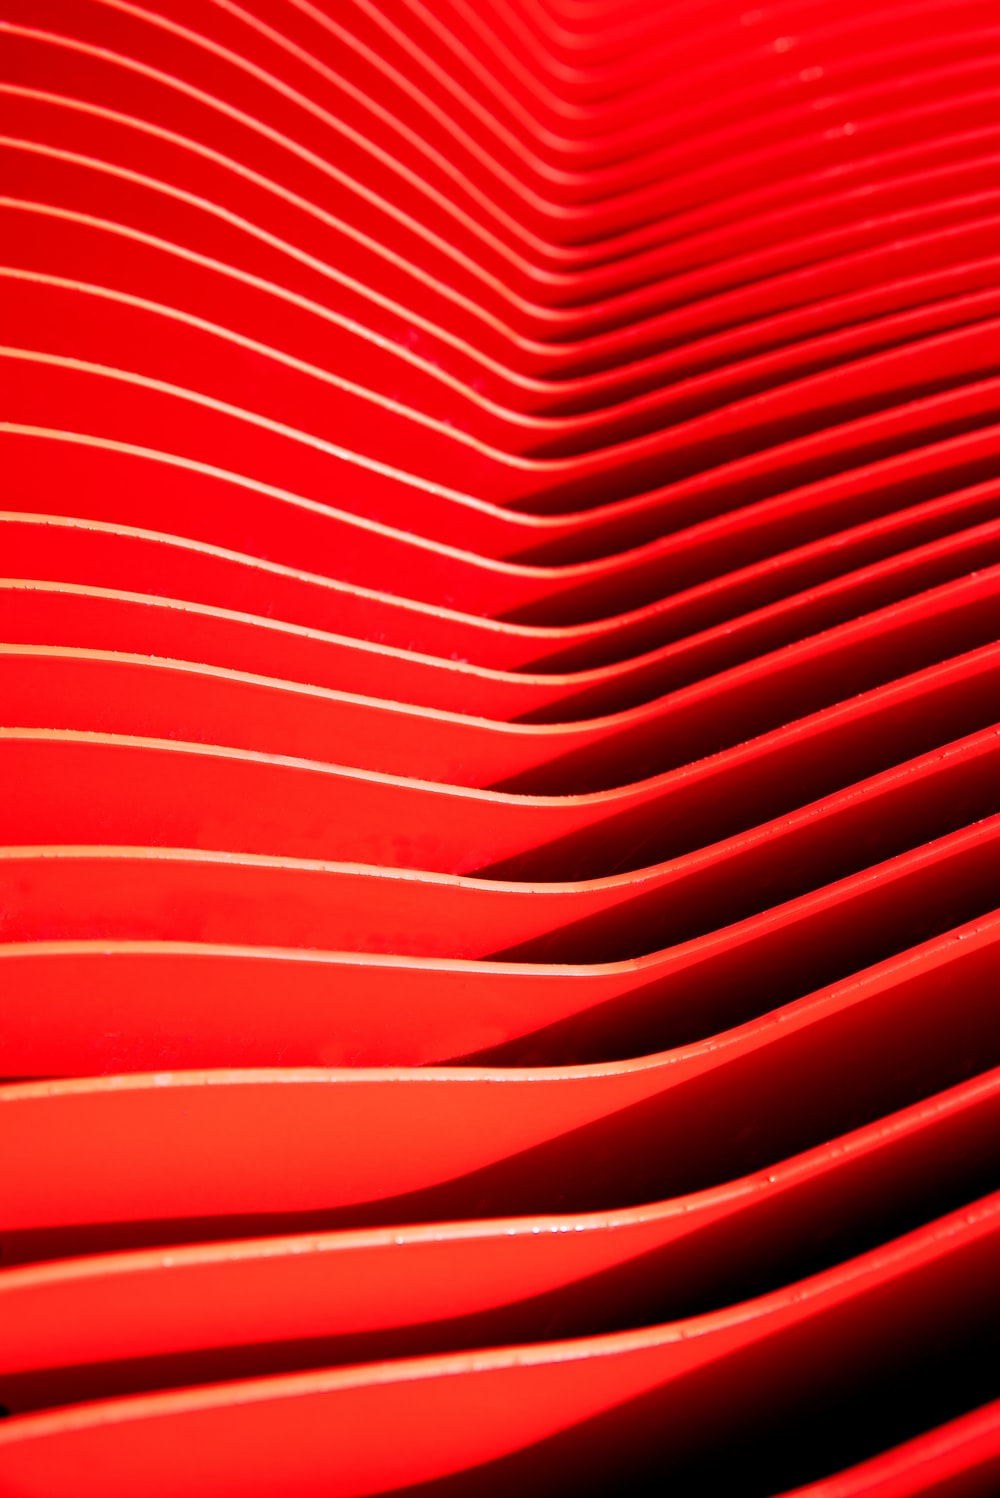 red plastic container on white surface